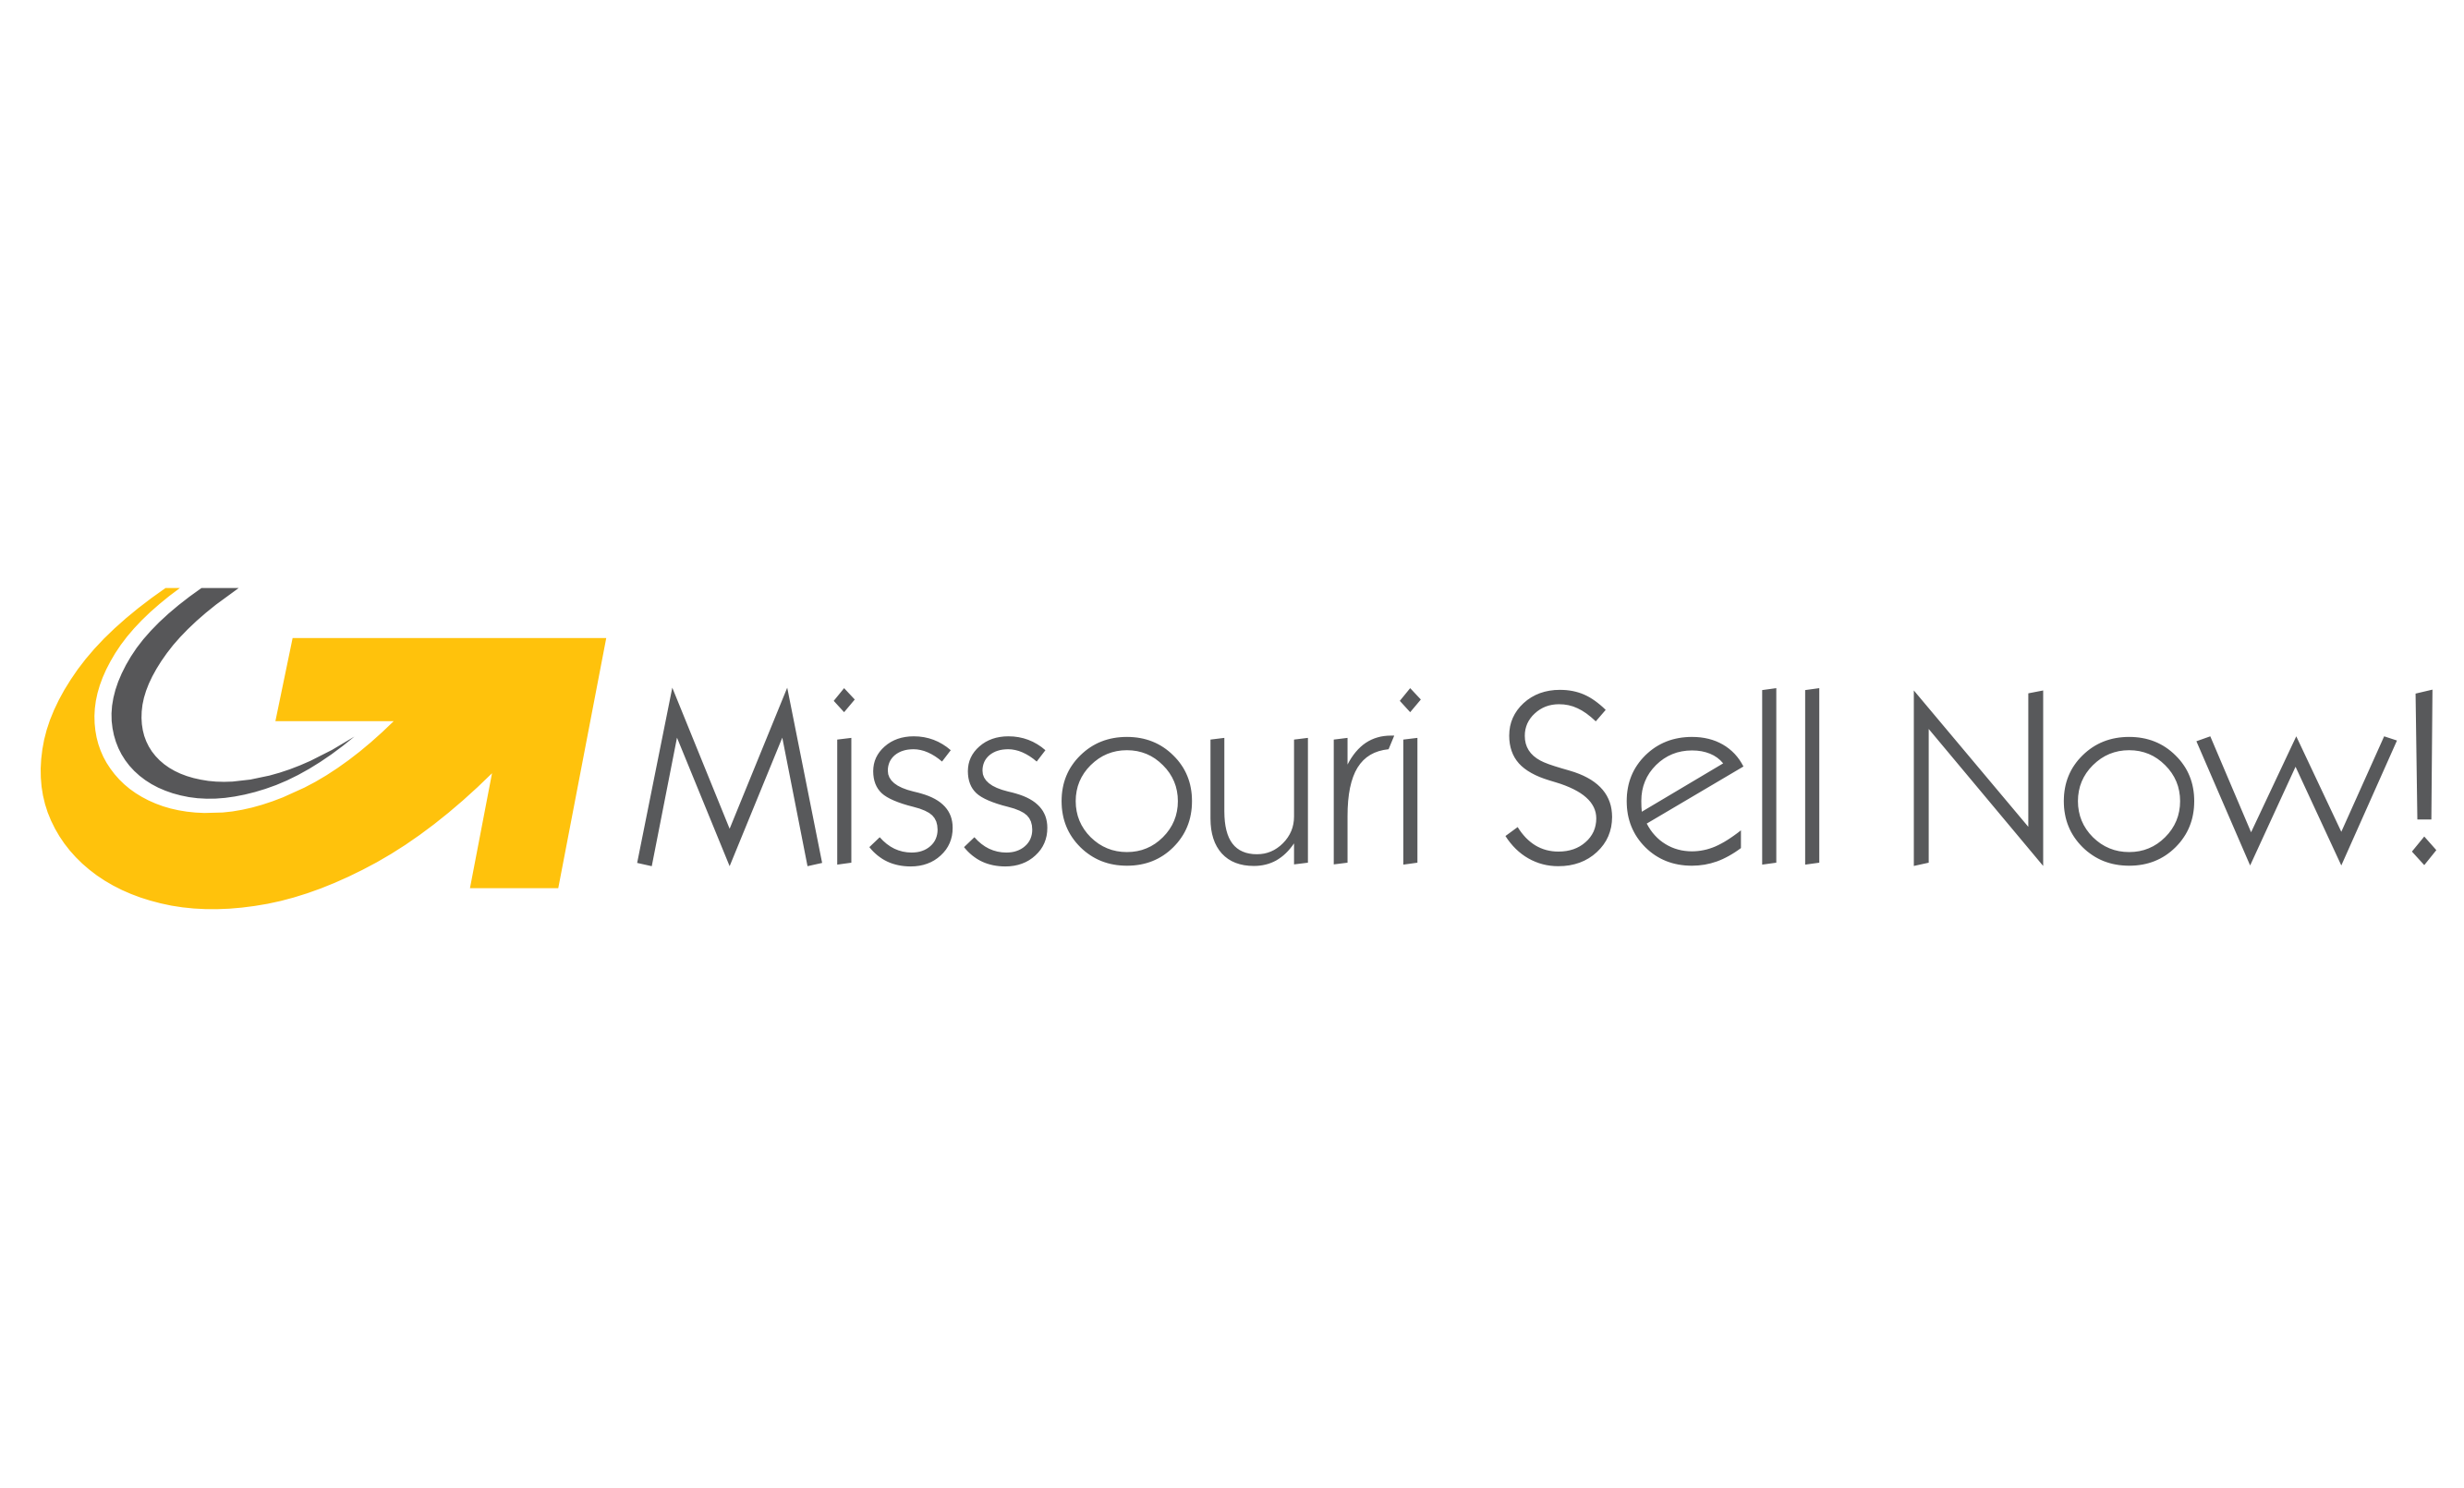 Missouri Sell Now! Expands As-Is House Buying into St. Louis Metro Area